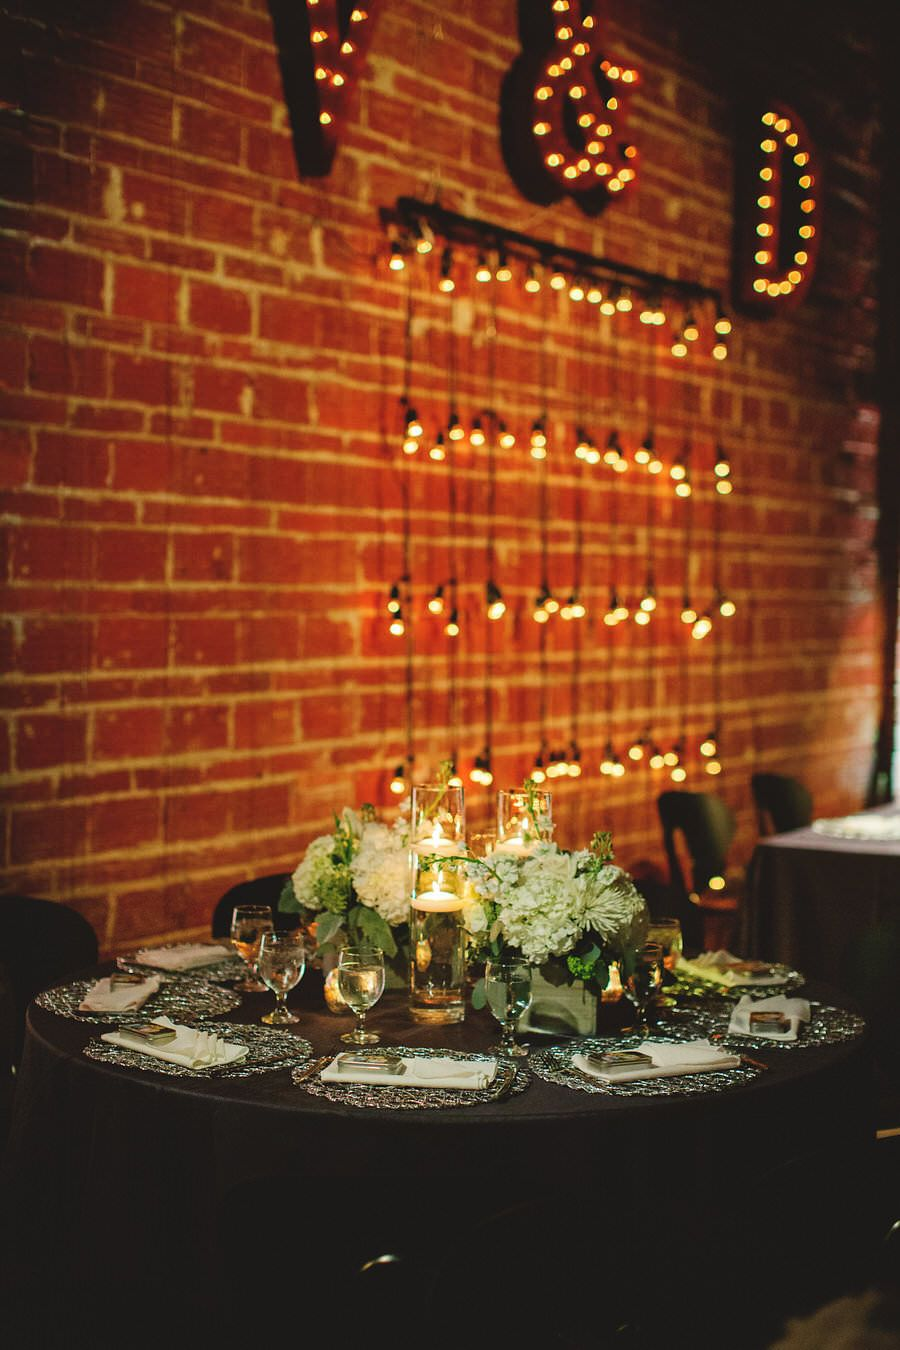 Silver and Ivory Wedding Reception Decor Centerpieces with Floating Candles, Silver Chargers and Exposed Brick Walls with Hanging String Lights